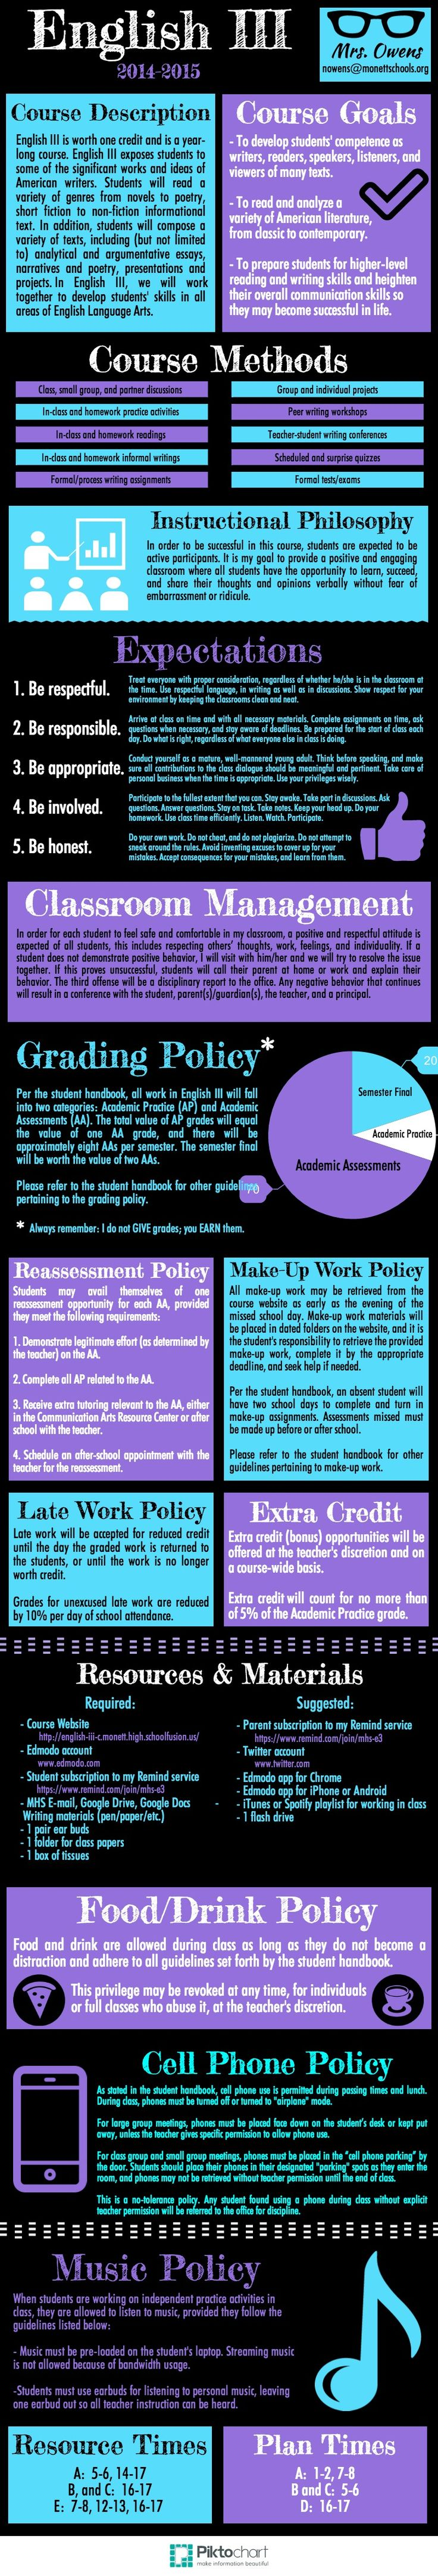 Piktochart Infographic Editor - A nice way to make info graphics, maybe an idea for syllabi?